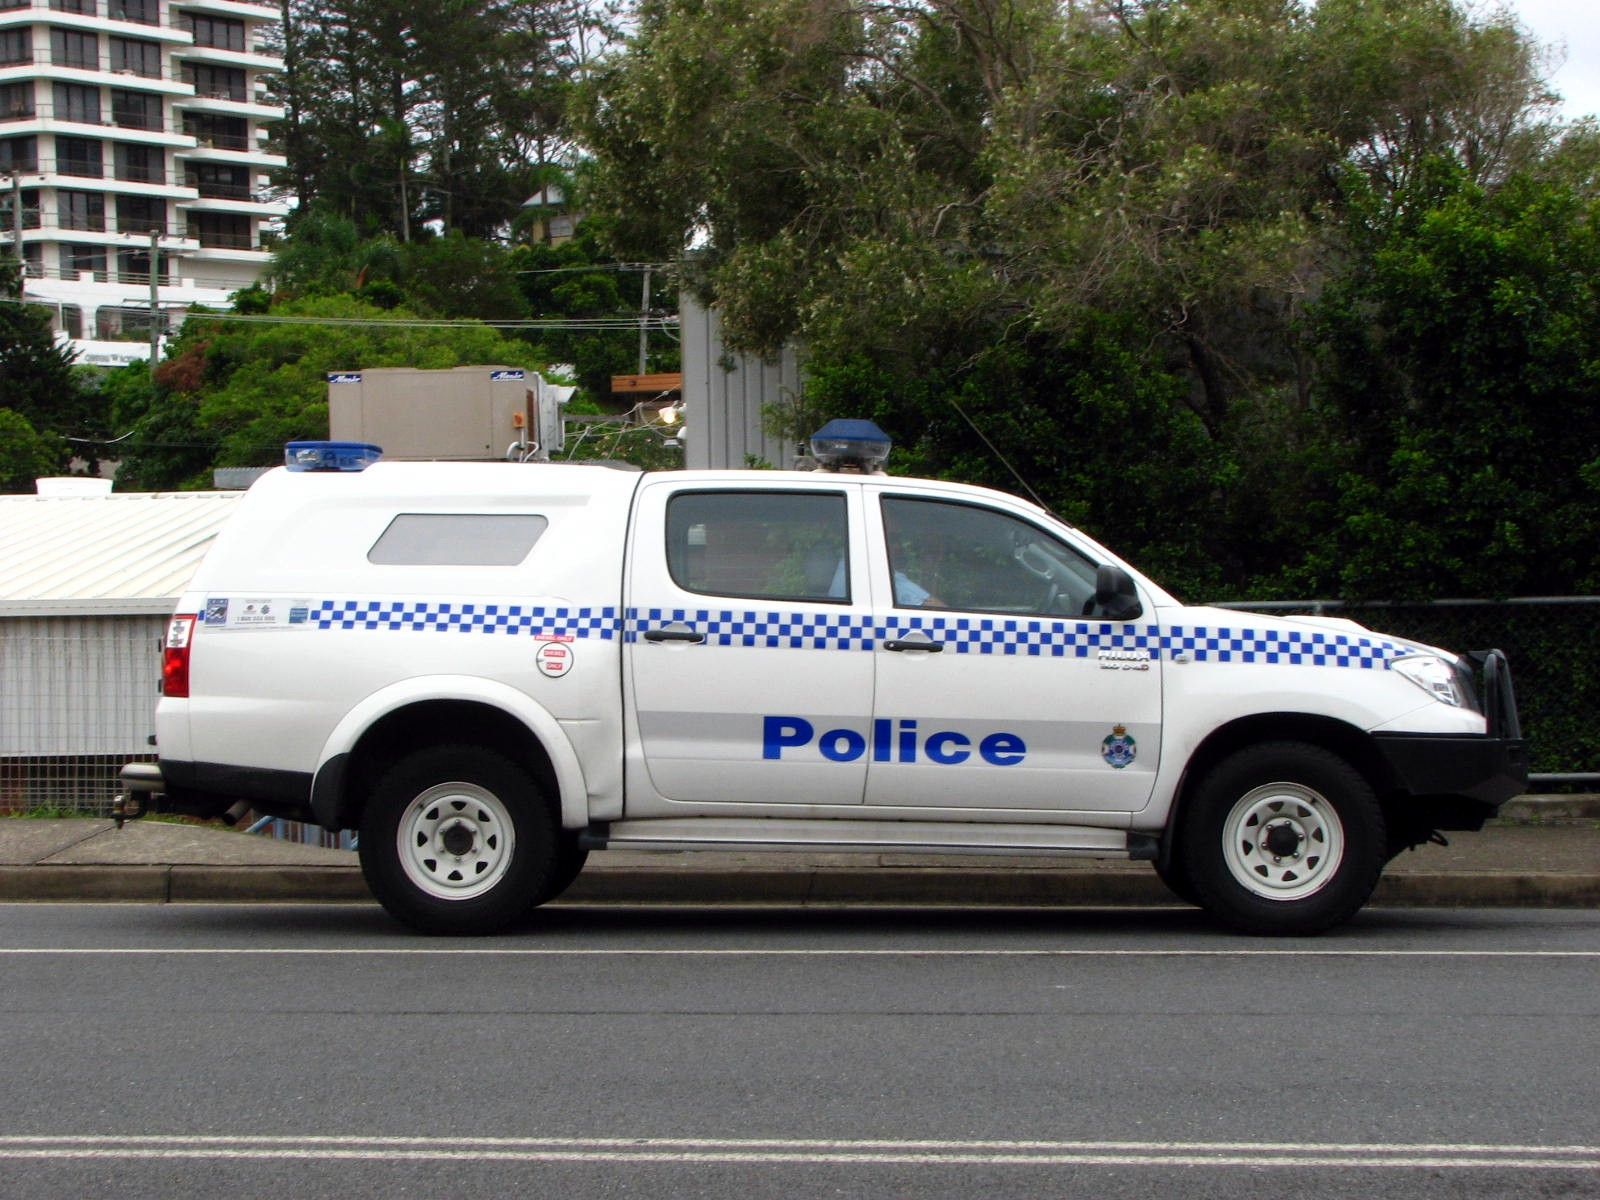 FileQLD Police \u0027HIMEN\  Toyota Hilux 4X4 with Holden Crewman rear ute- & File:QLD Police \u0027HIMEN\